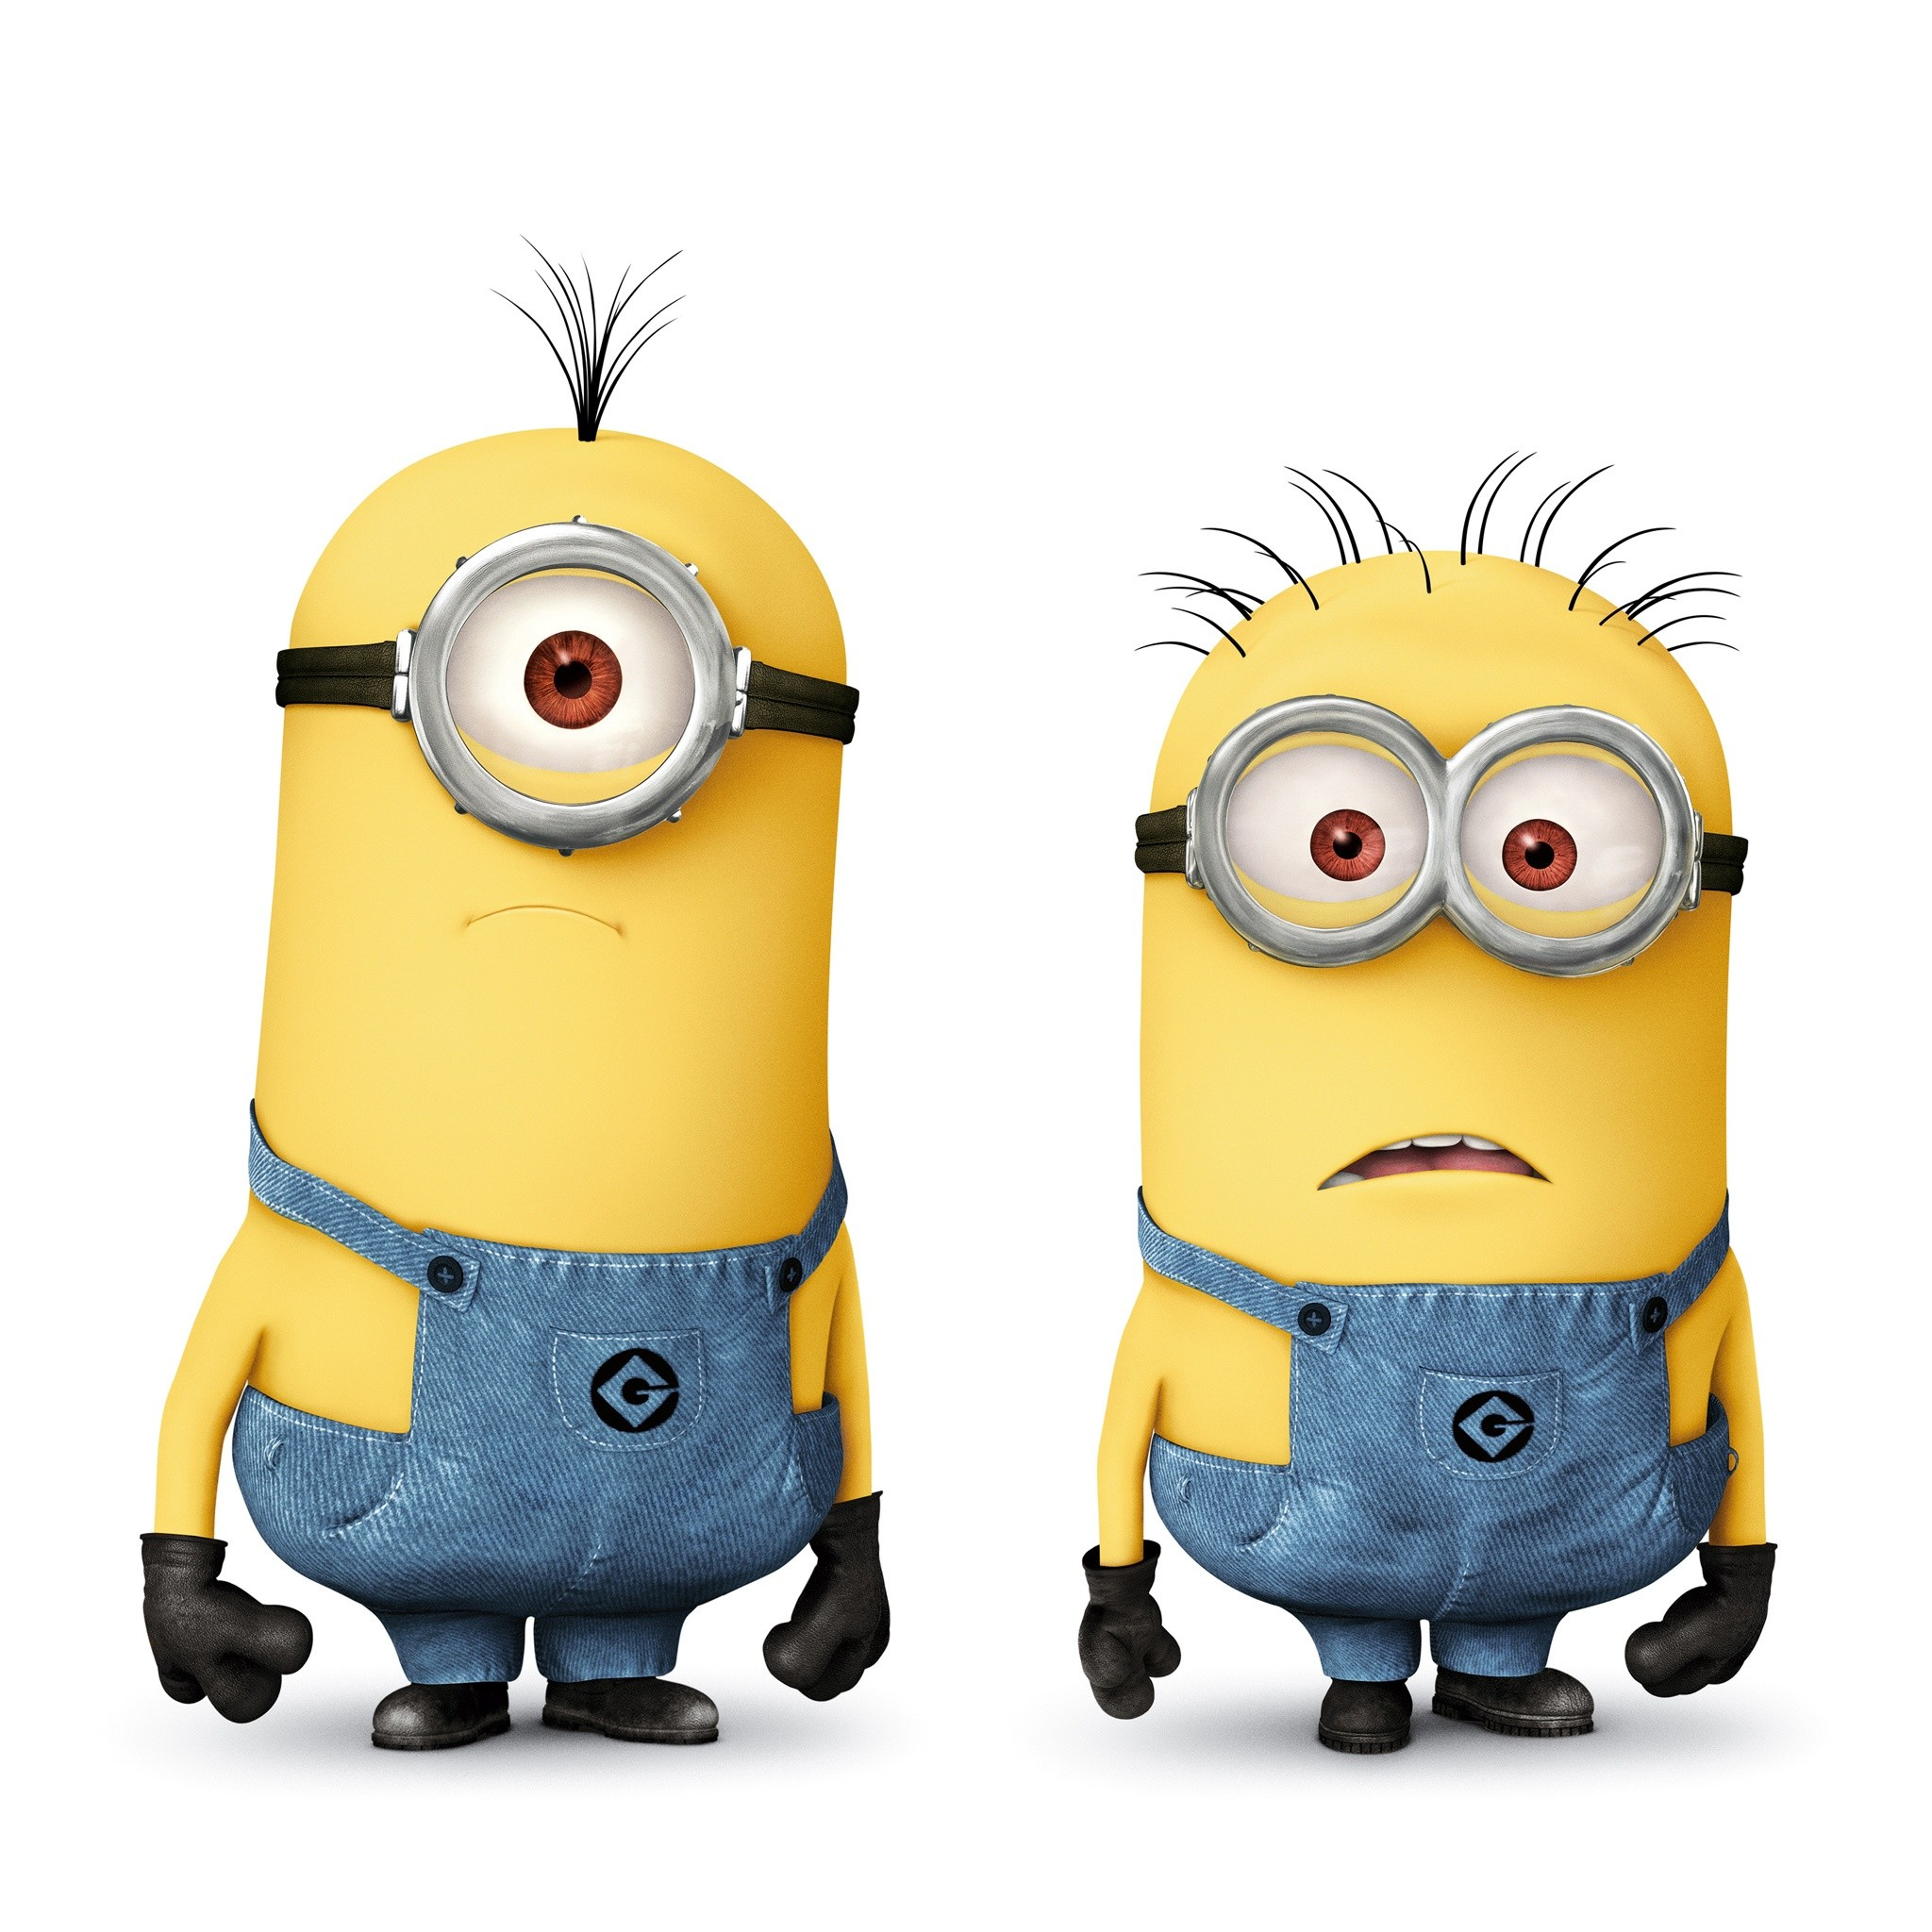 minions | Minions in Despicable Me 2 HD Wallpaper – iHD Wallpapers